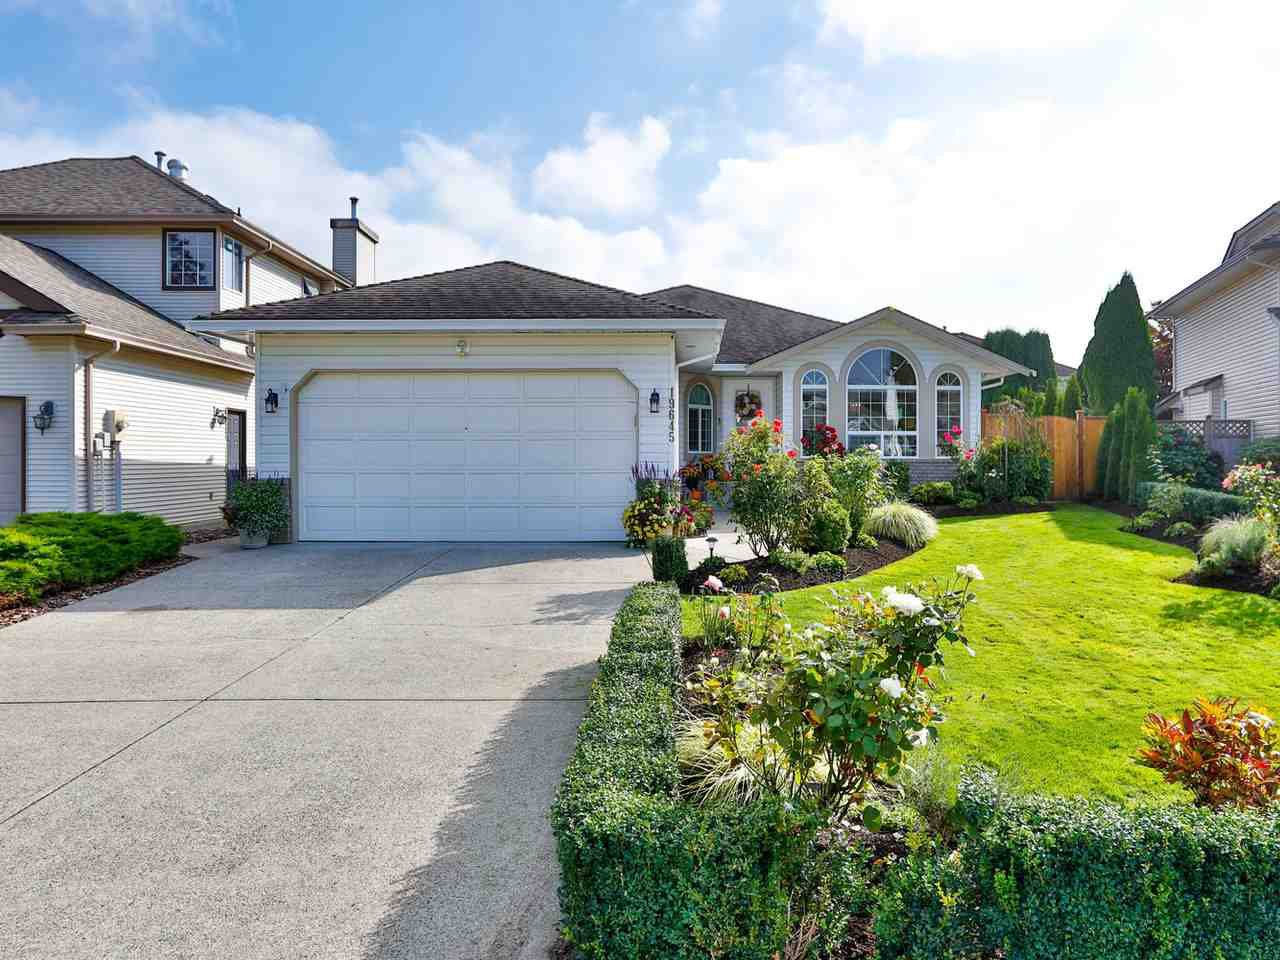 Main Photo: 19645 SOMERSET Drive in Pitt Meadows: Mid Meadows House for sale : MLS®# R2505880